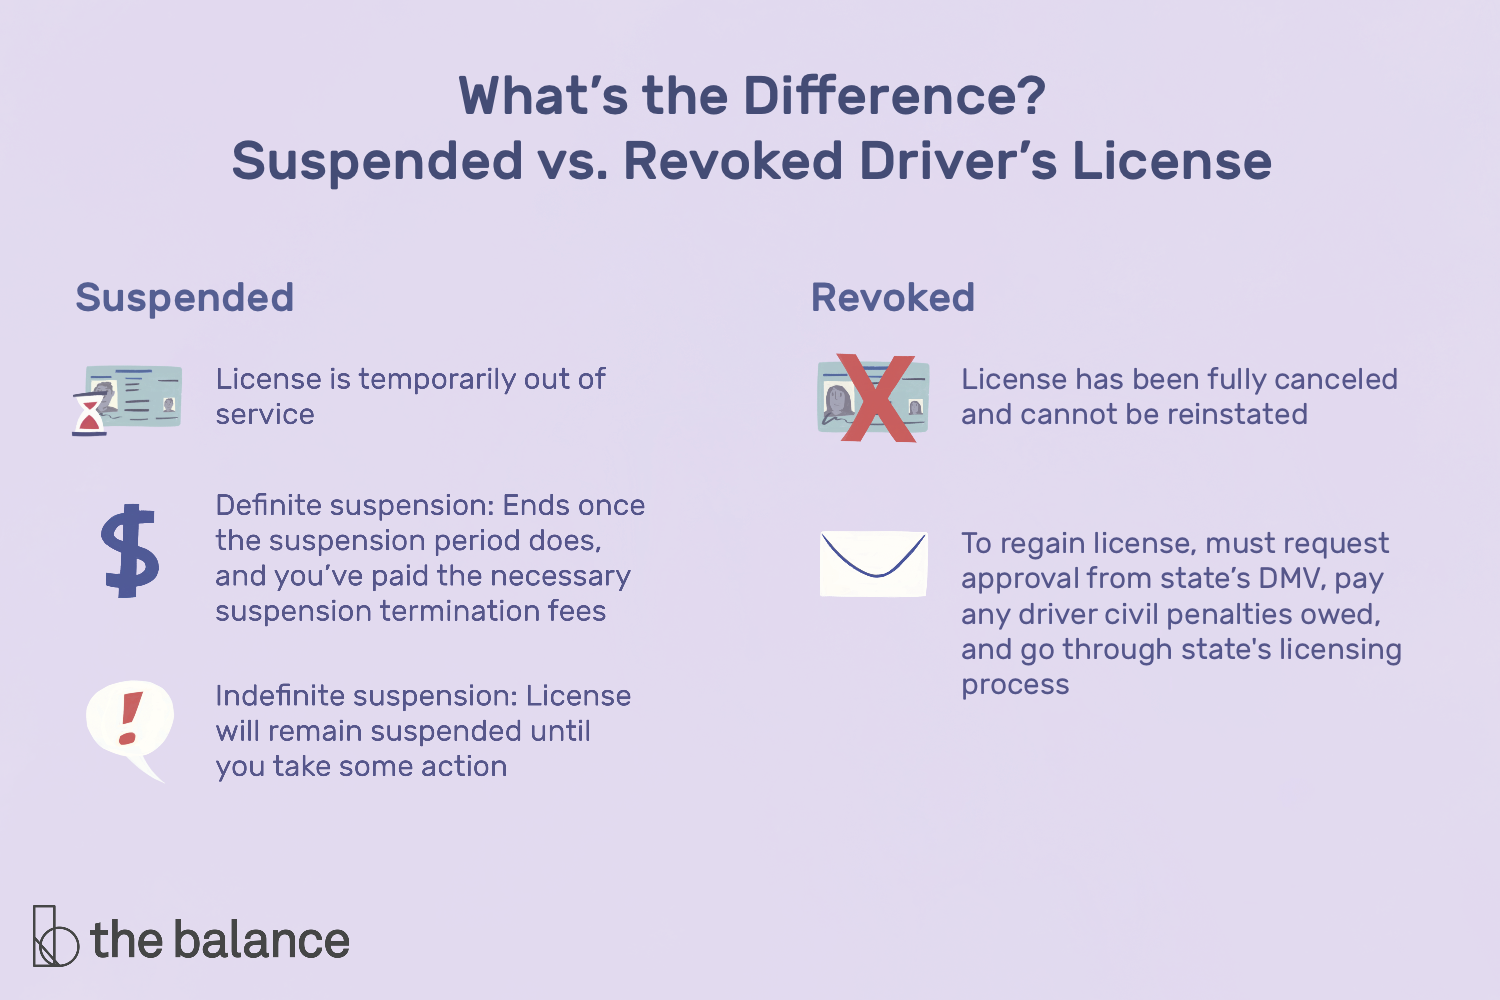 Difference Between A Suspended And A Revoked License